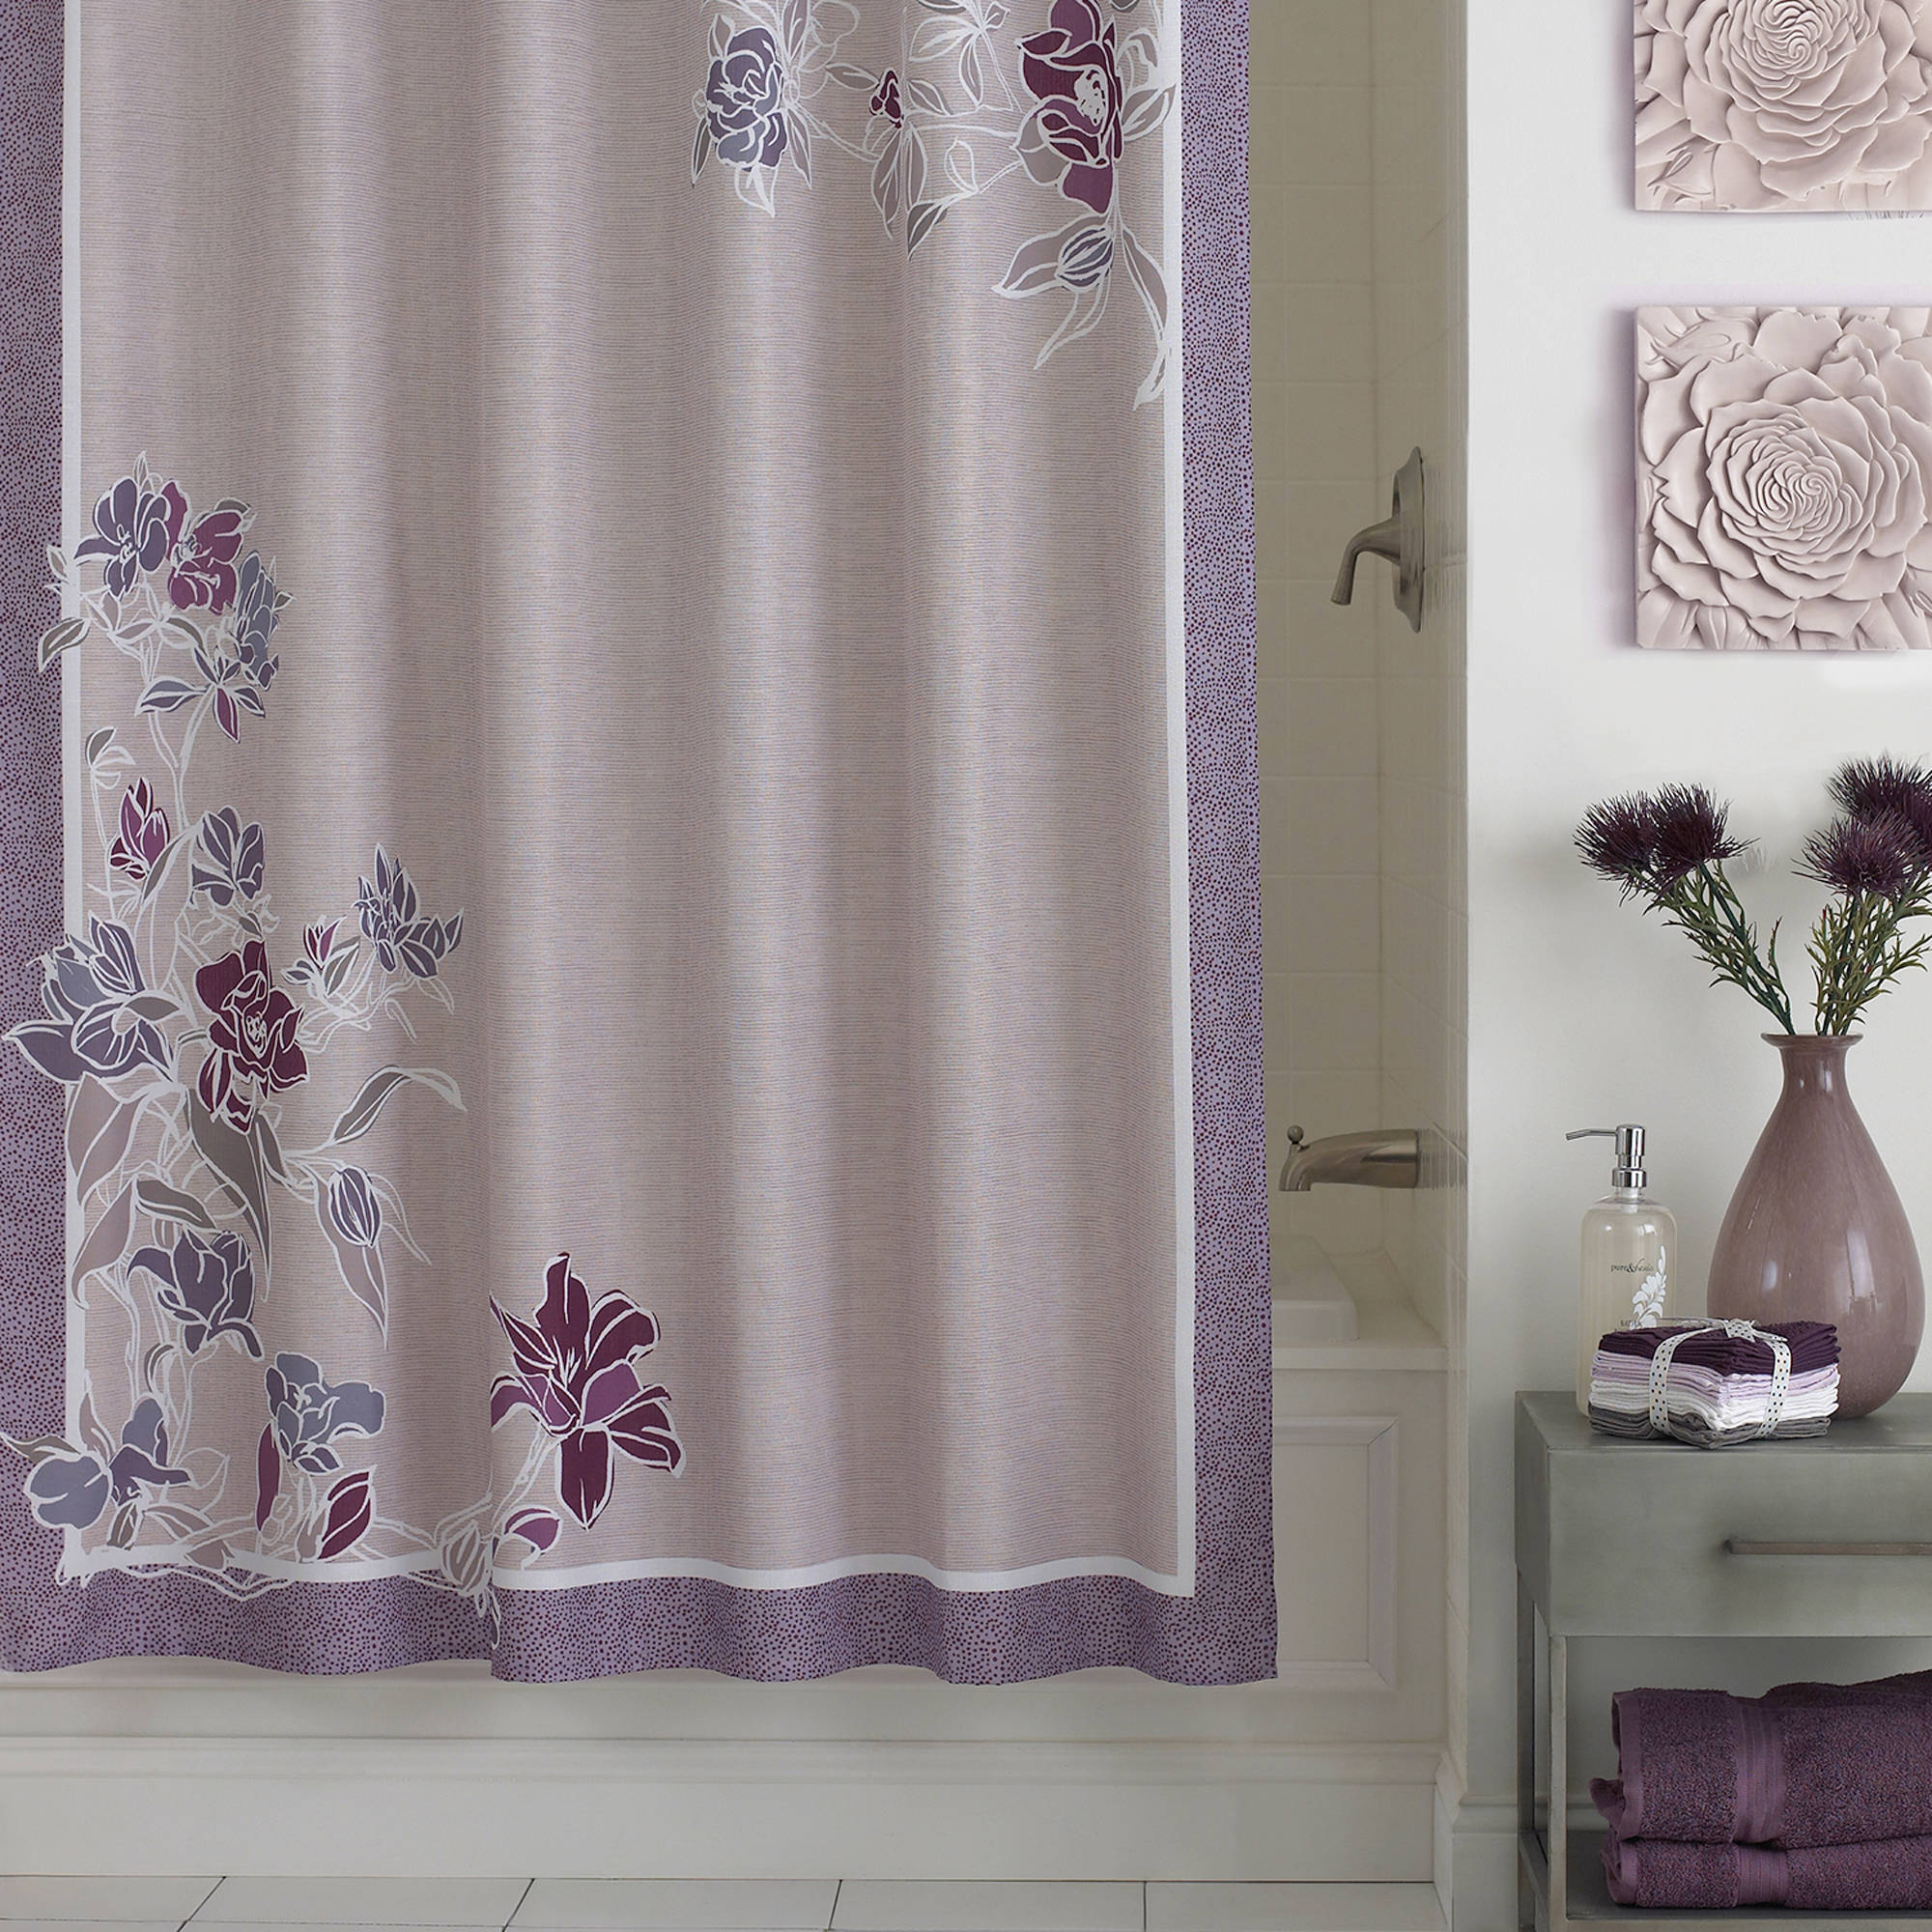 Excell Zara Fabric Shower Curtain, Lavender